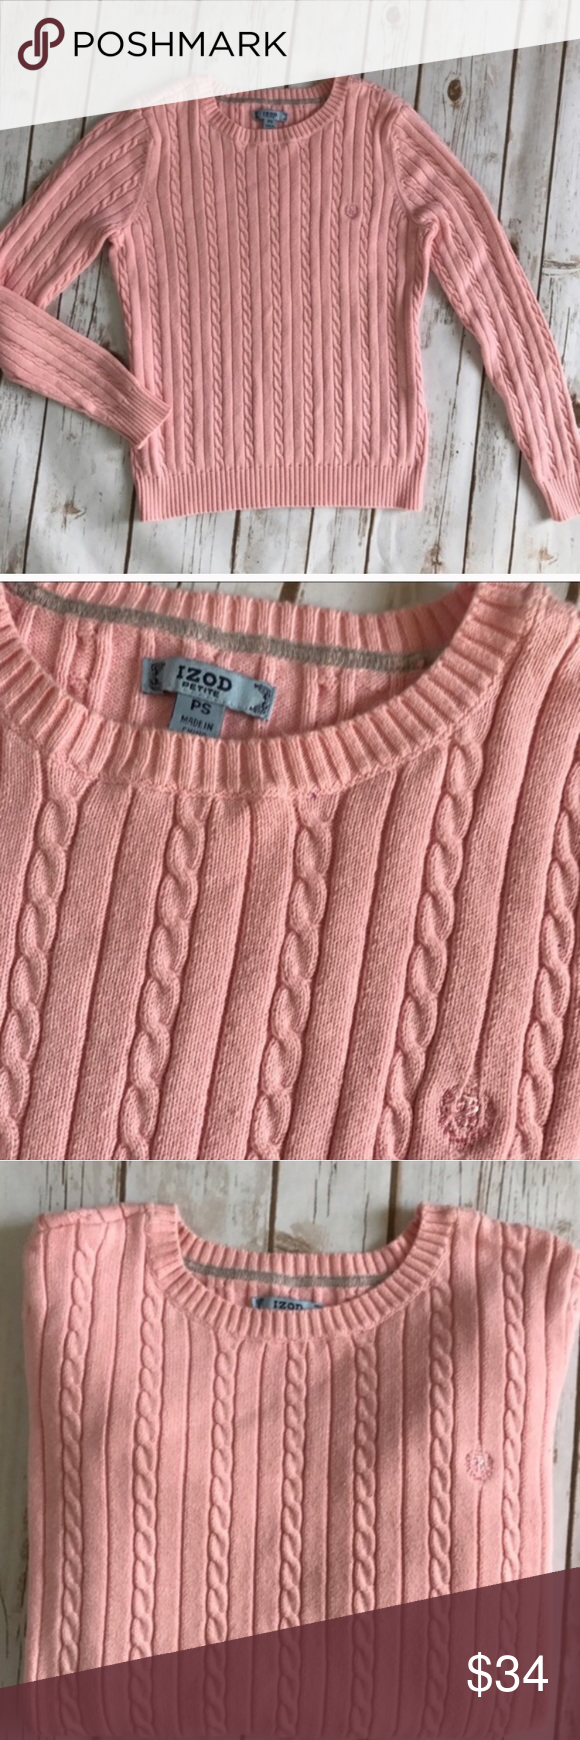 IZOD CLASSIC CABLE KNIT SWEATER IN BLUSH PINK IZOD CABLE KNIT ...